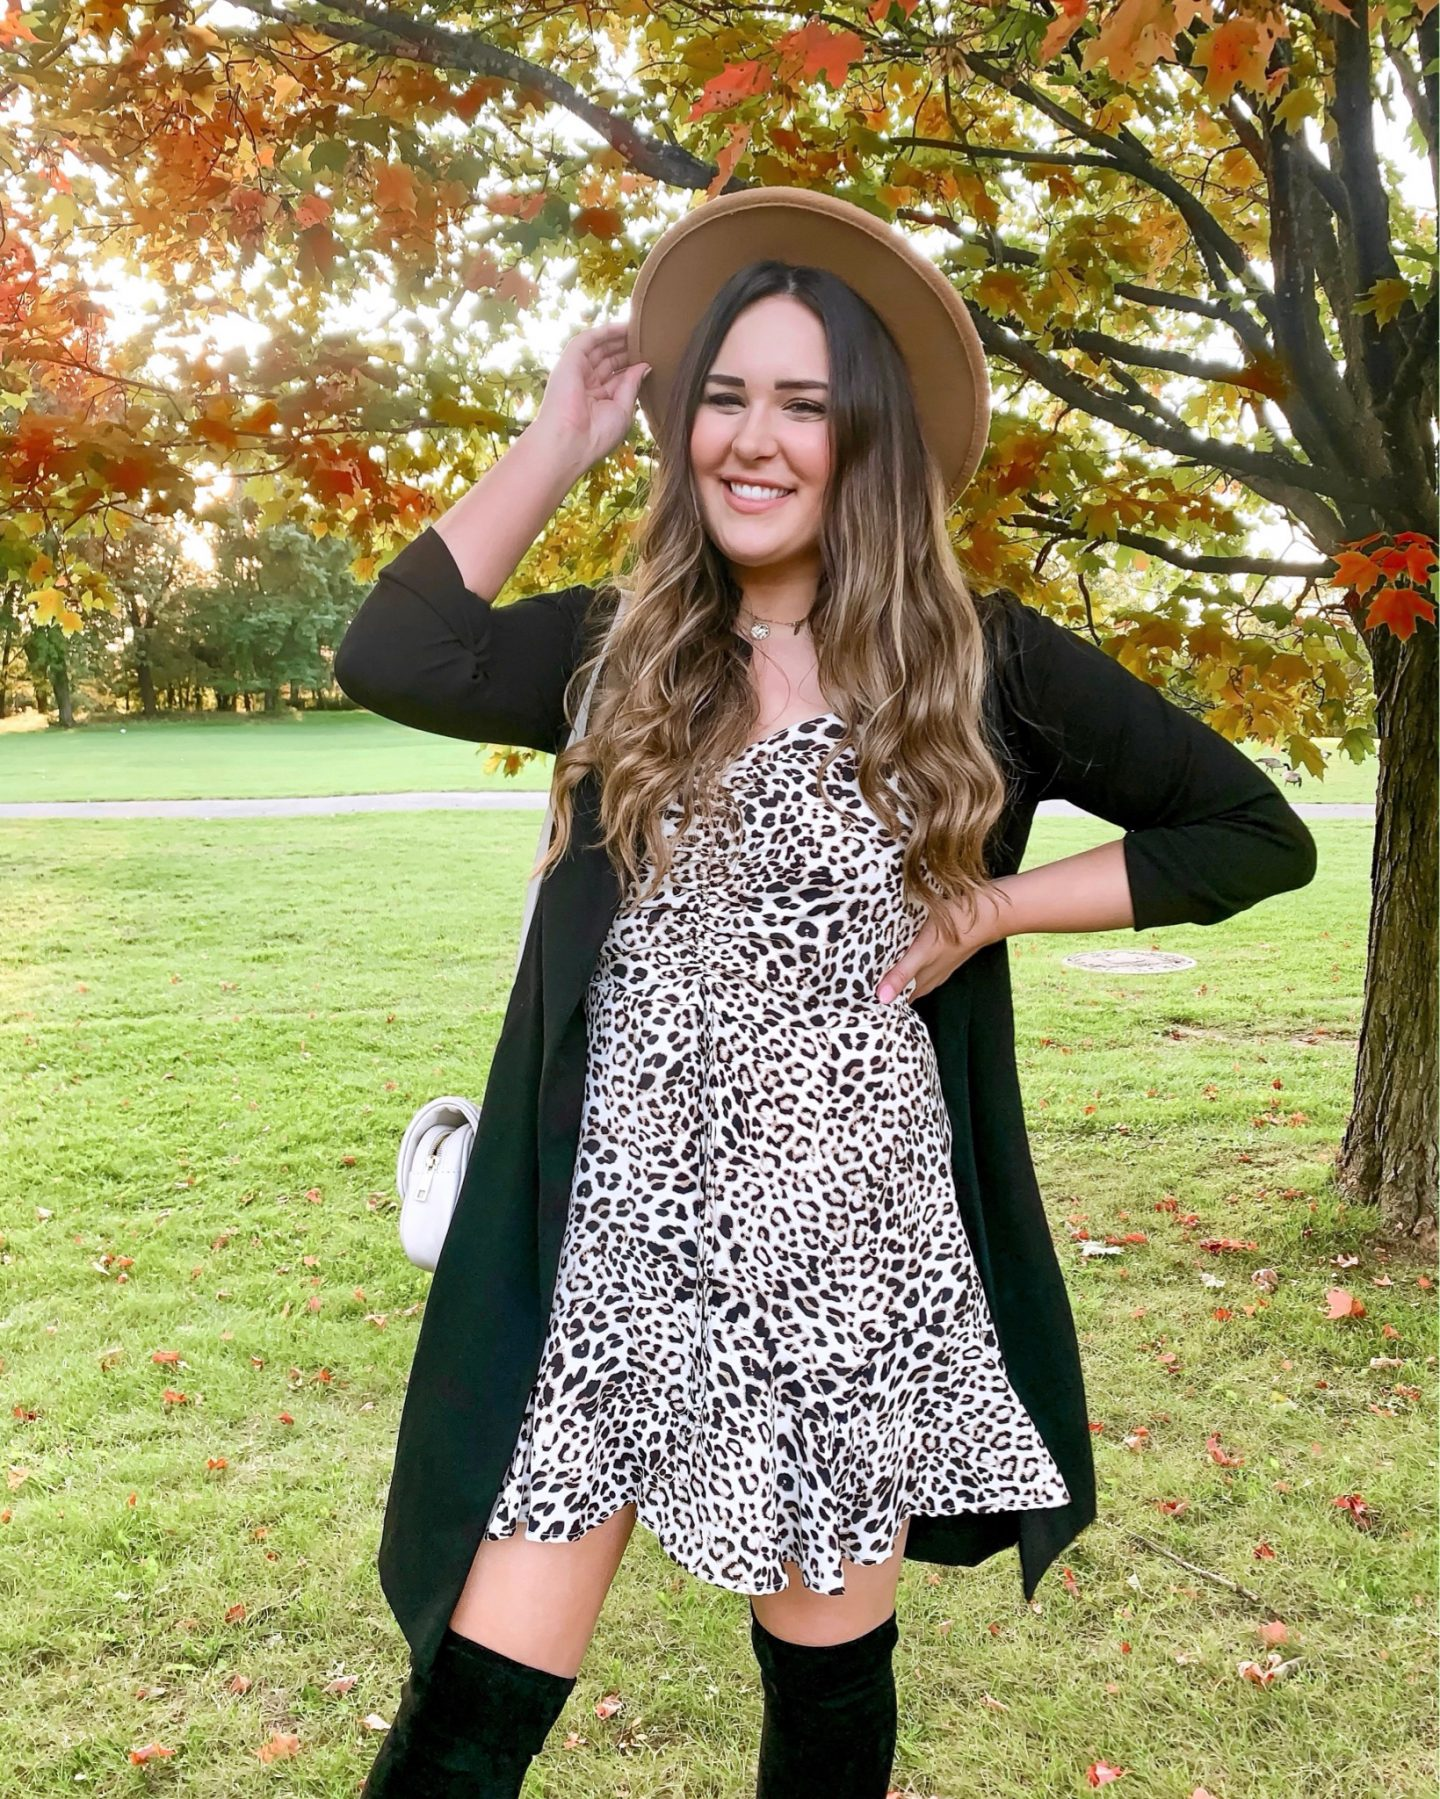 Mash Elle beauty blogger | dating horror stories | first date | relationships | dating advice | fall look | leopard print dress | fall hat